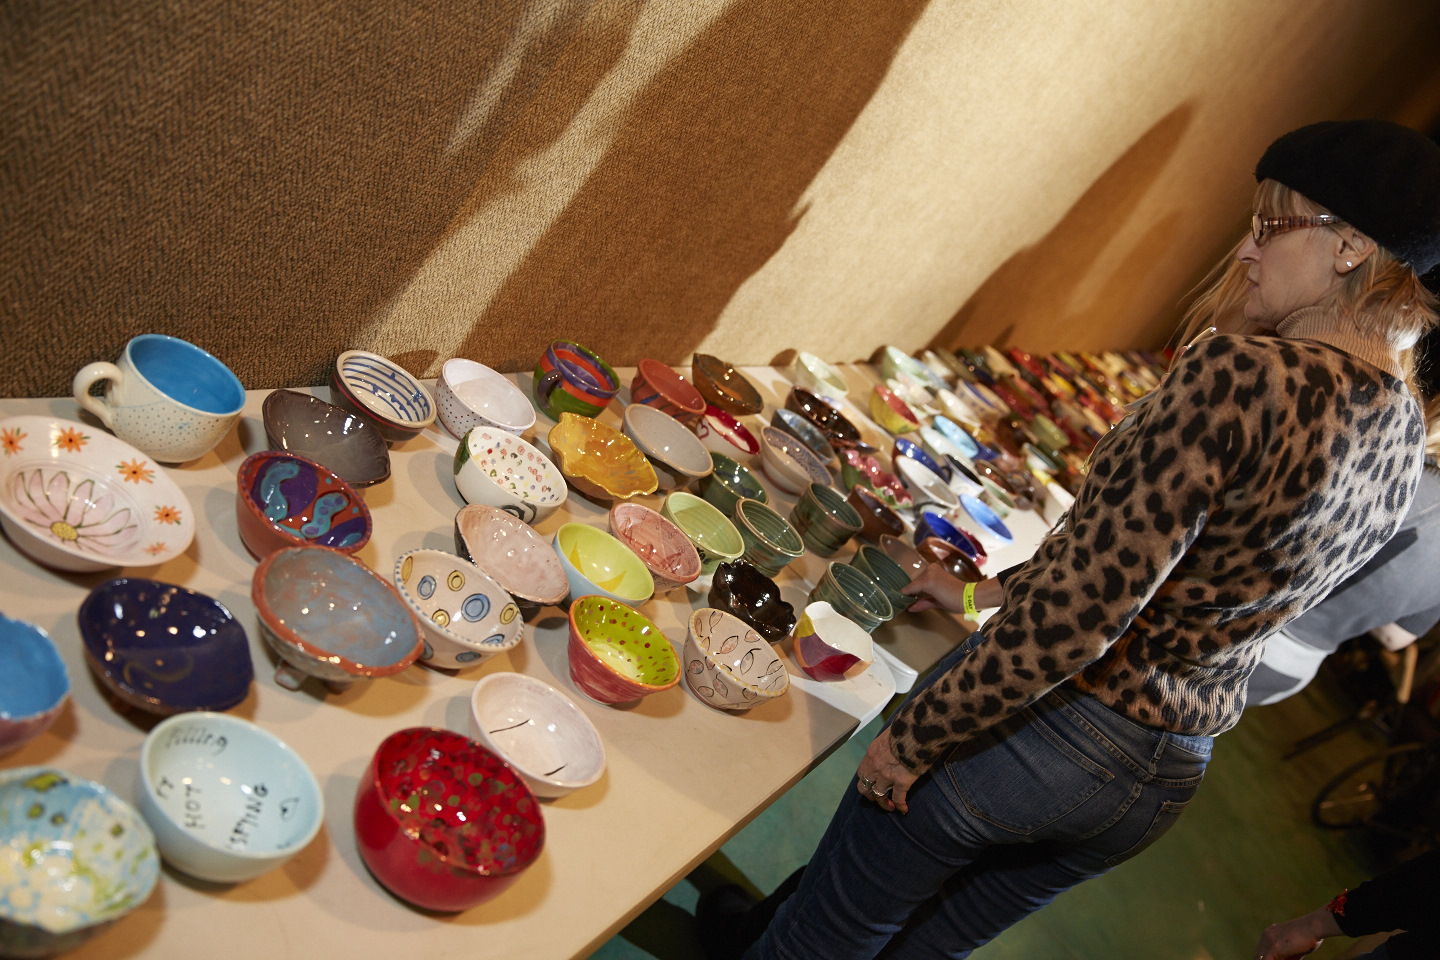 Assortment of hand-painted bowls